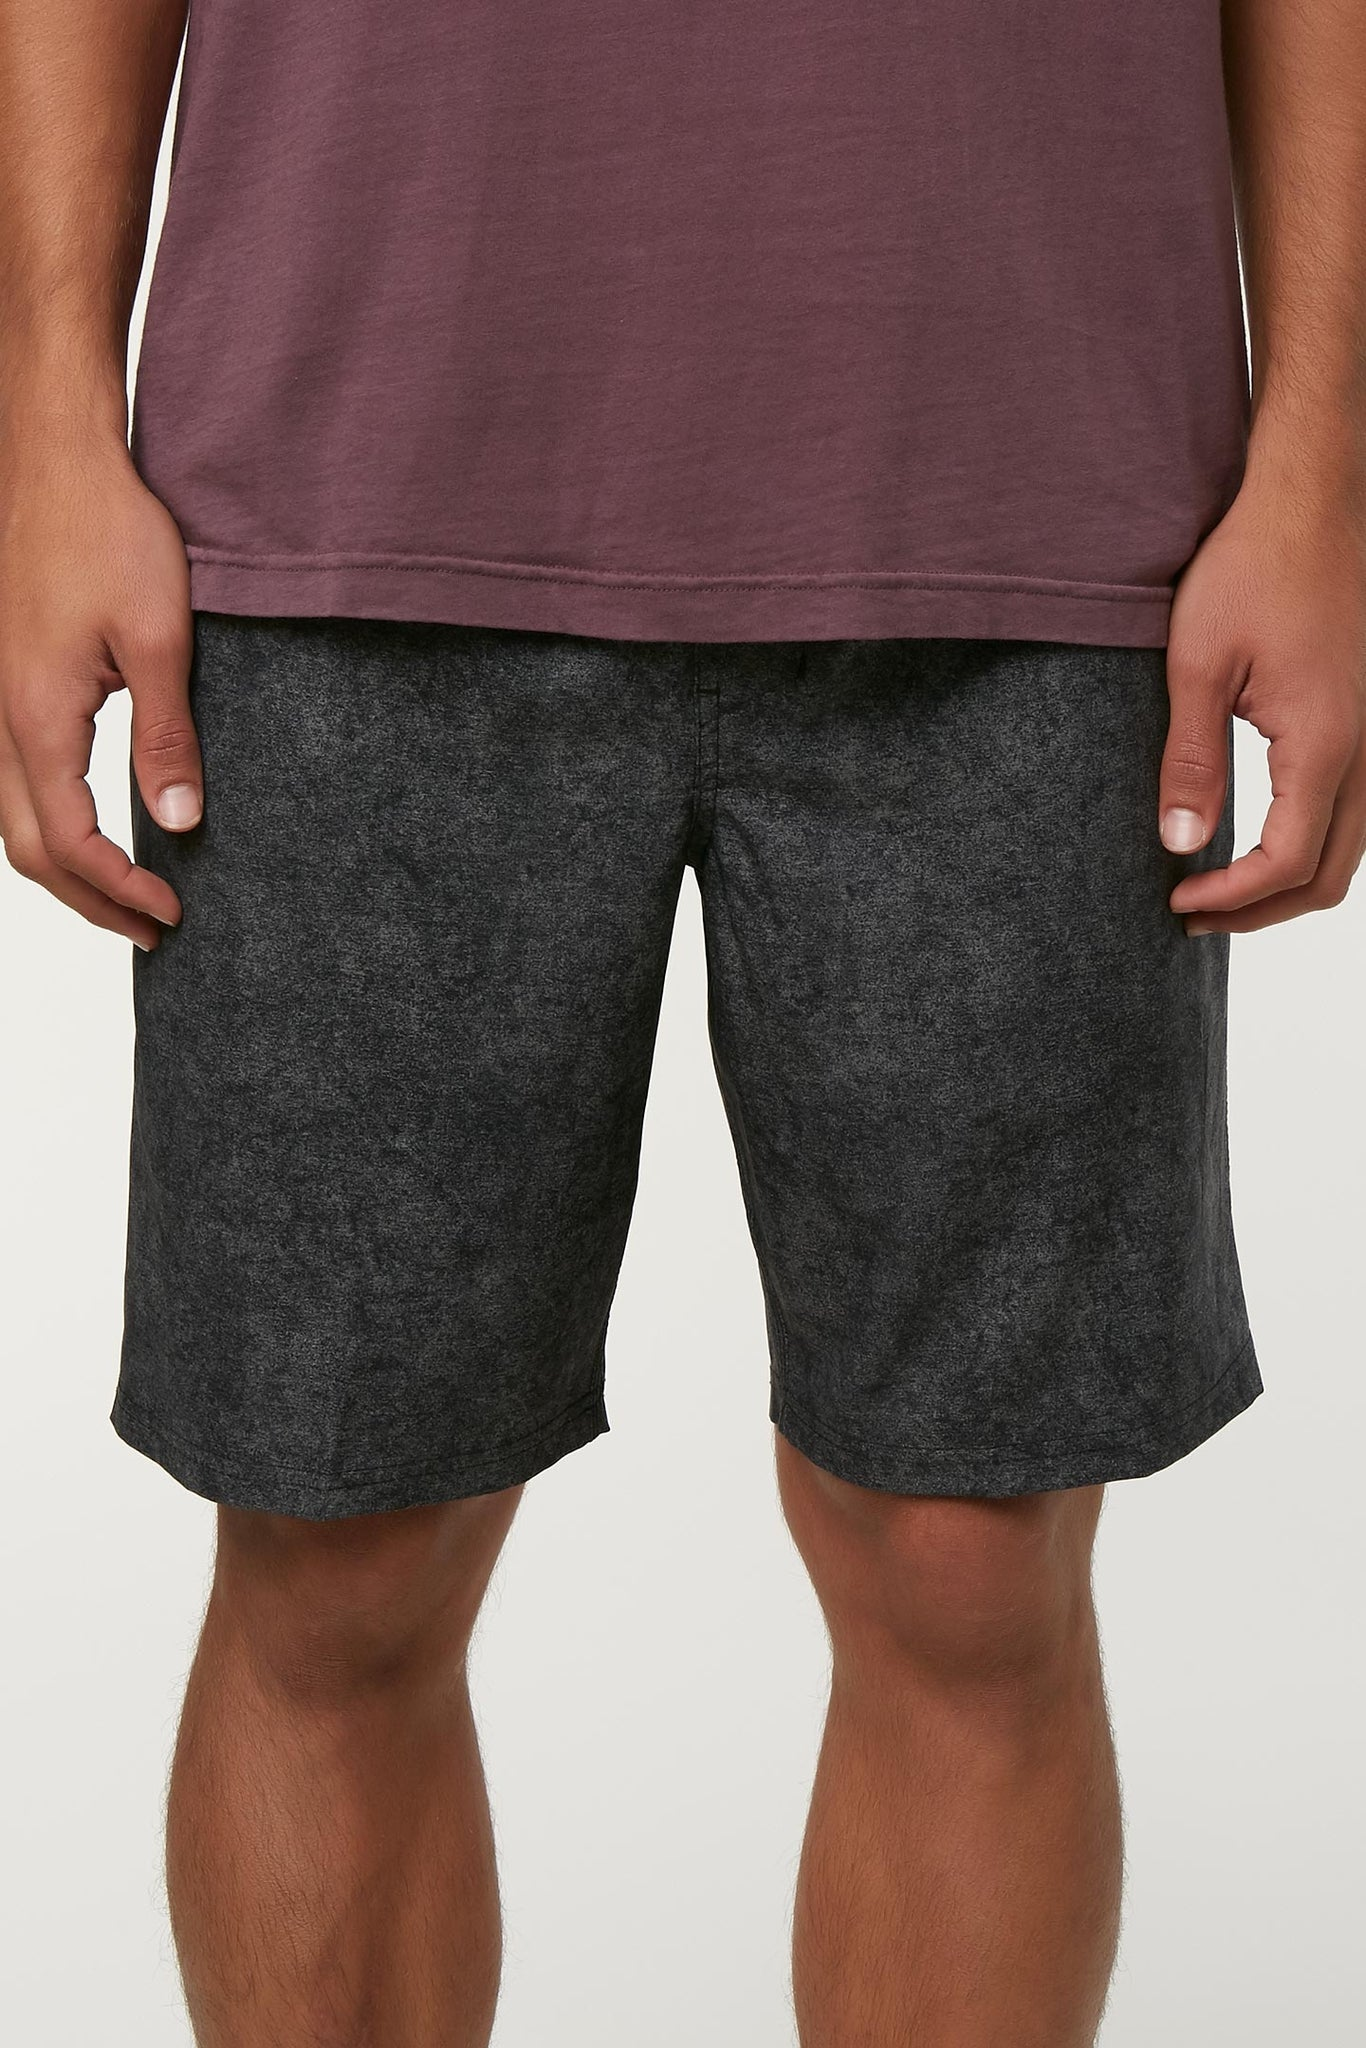 Brisbane Hybrid Shorts | O'Neill Clothing USA